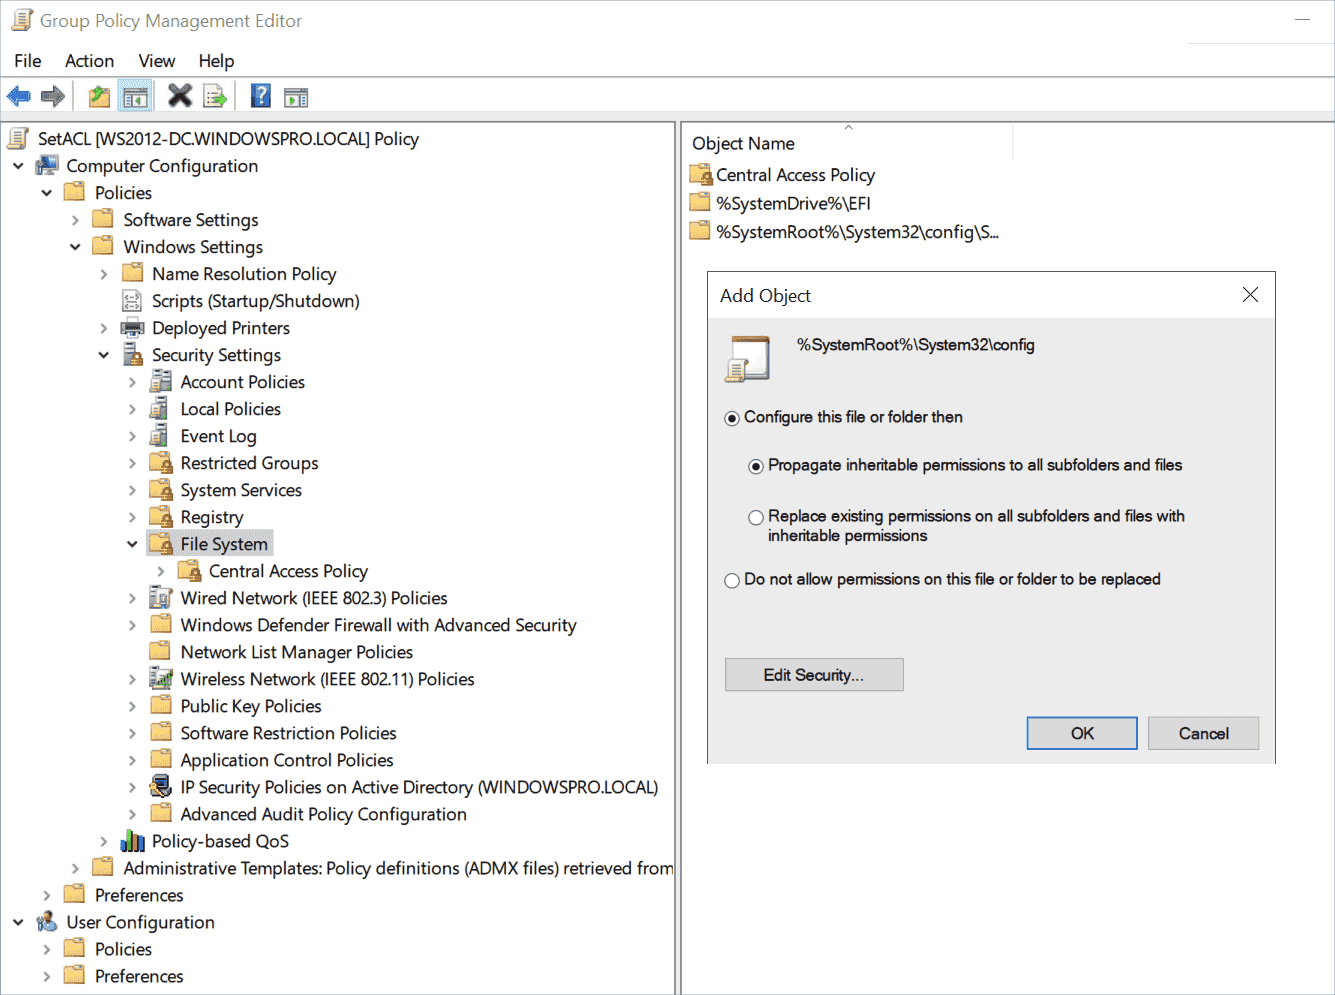 Specify how and whether the changed permissions are passed to the subfolders and files